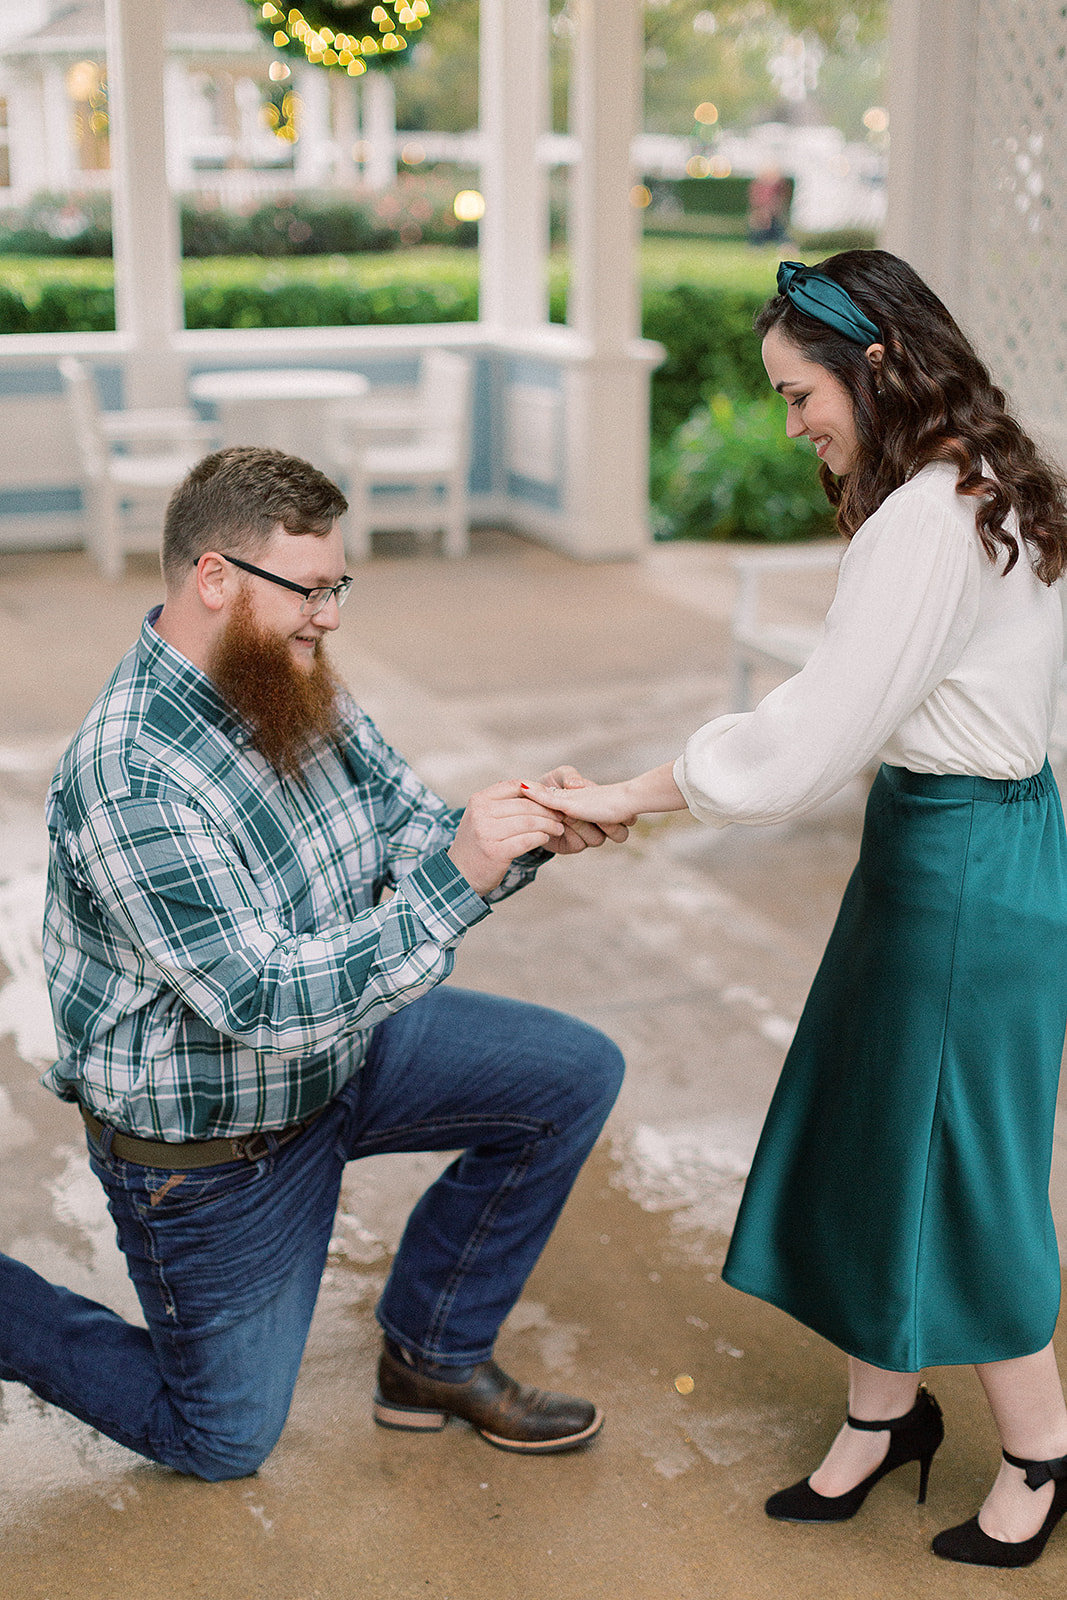 Cassidy_+_Kylor_Proposal_at_Disney_s_Beach_Club_Resort_Photographer_Casie_Marie_Photography-93